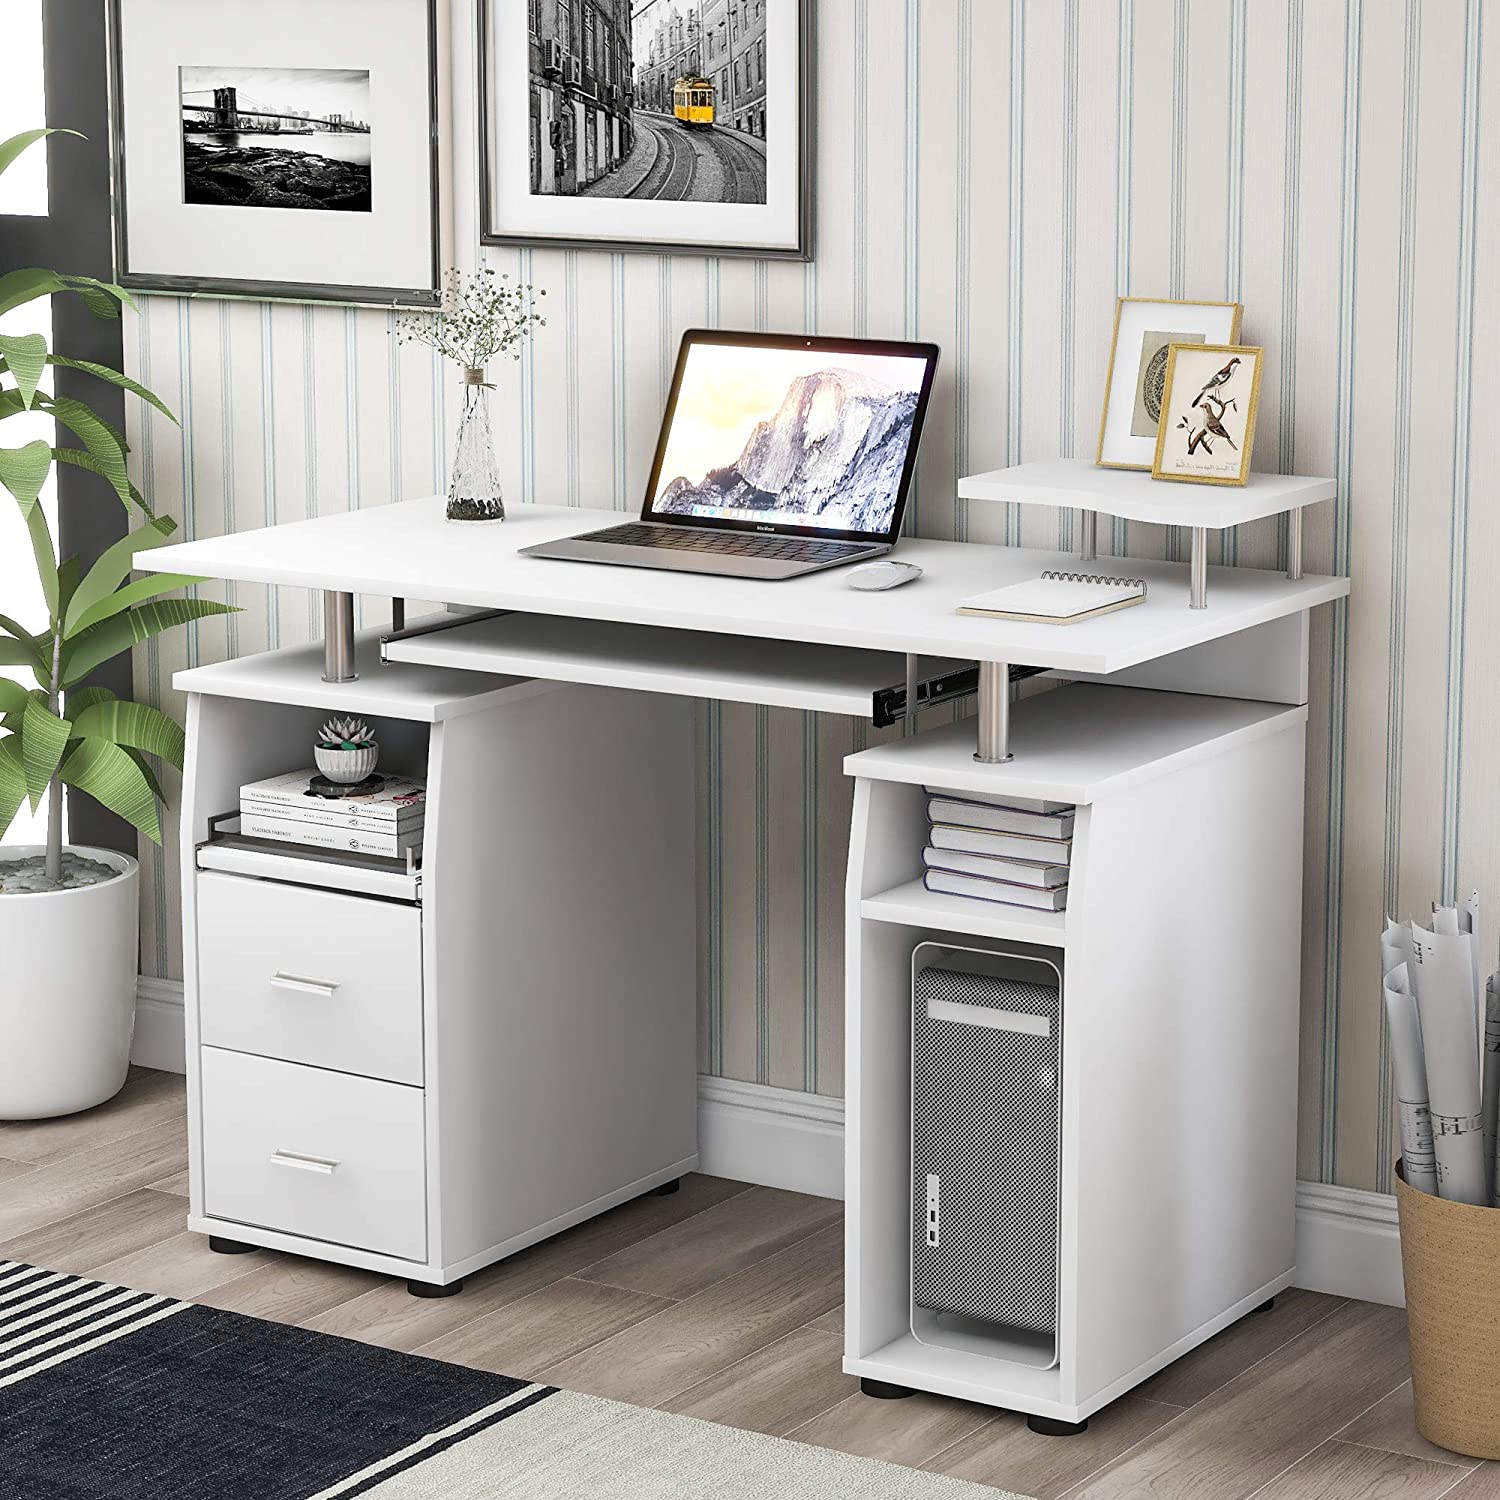 Our shop OFFers the Safety and trust best service Home Office Computer Desk with Drawers Pull-Out and Tra Keyboard